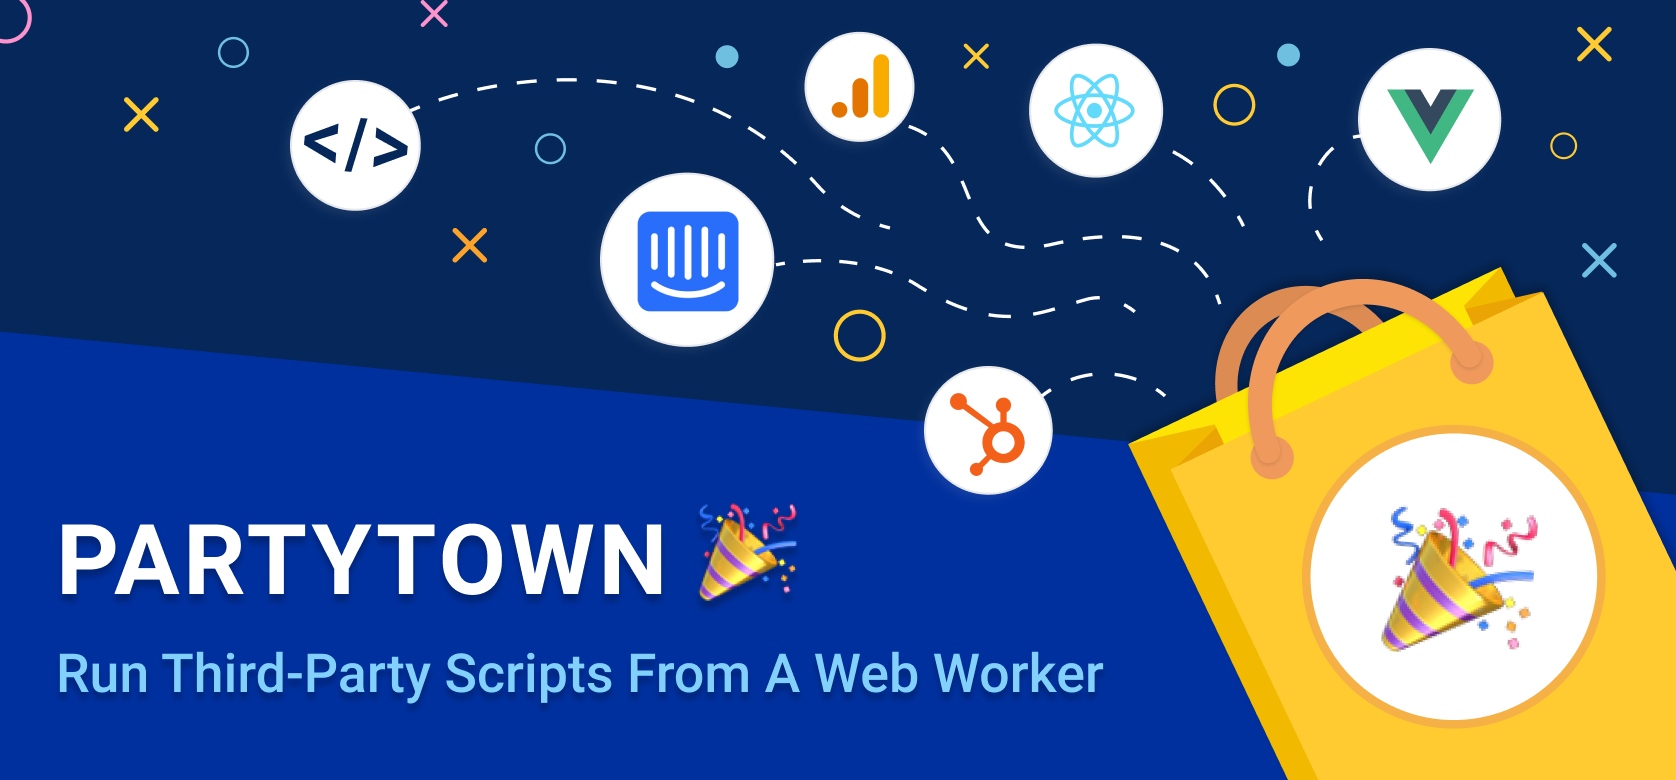 Partytown is a lazy-loaded 6kb library to help relocate resource intensive scripts into a web worker, and off of the main thread. Its goal is to help